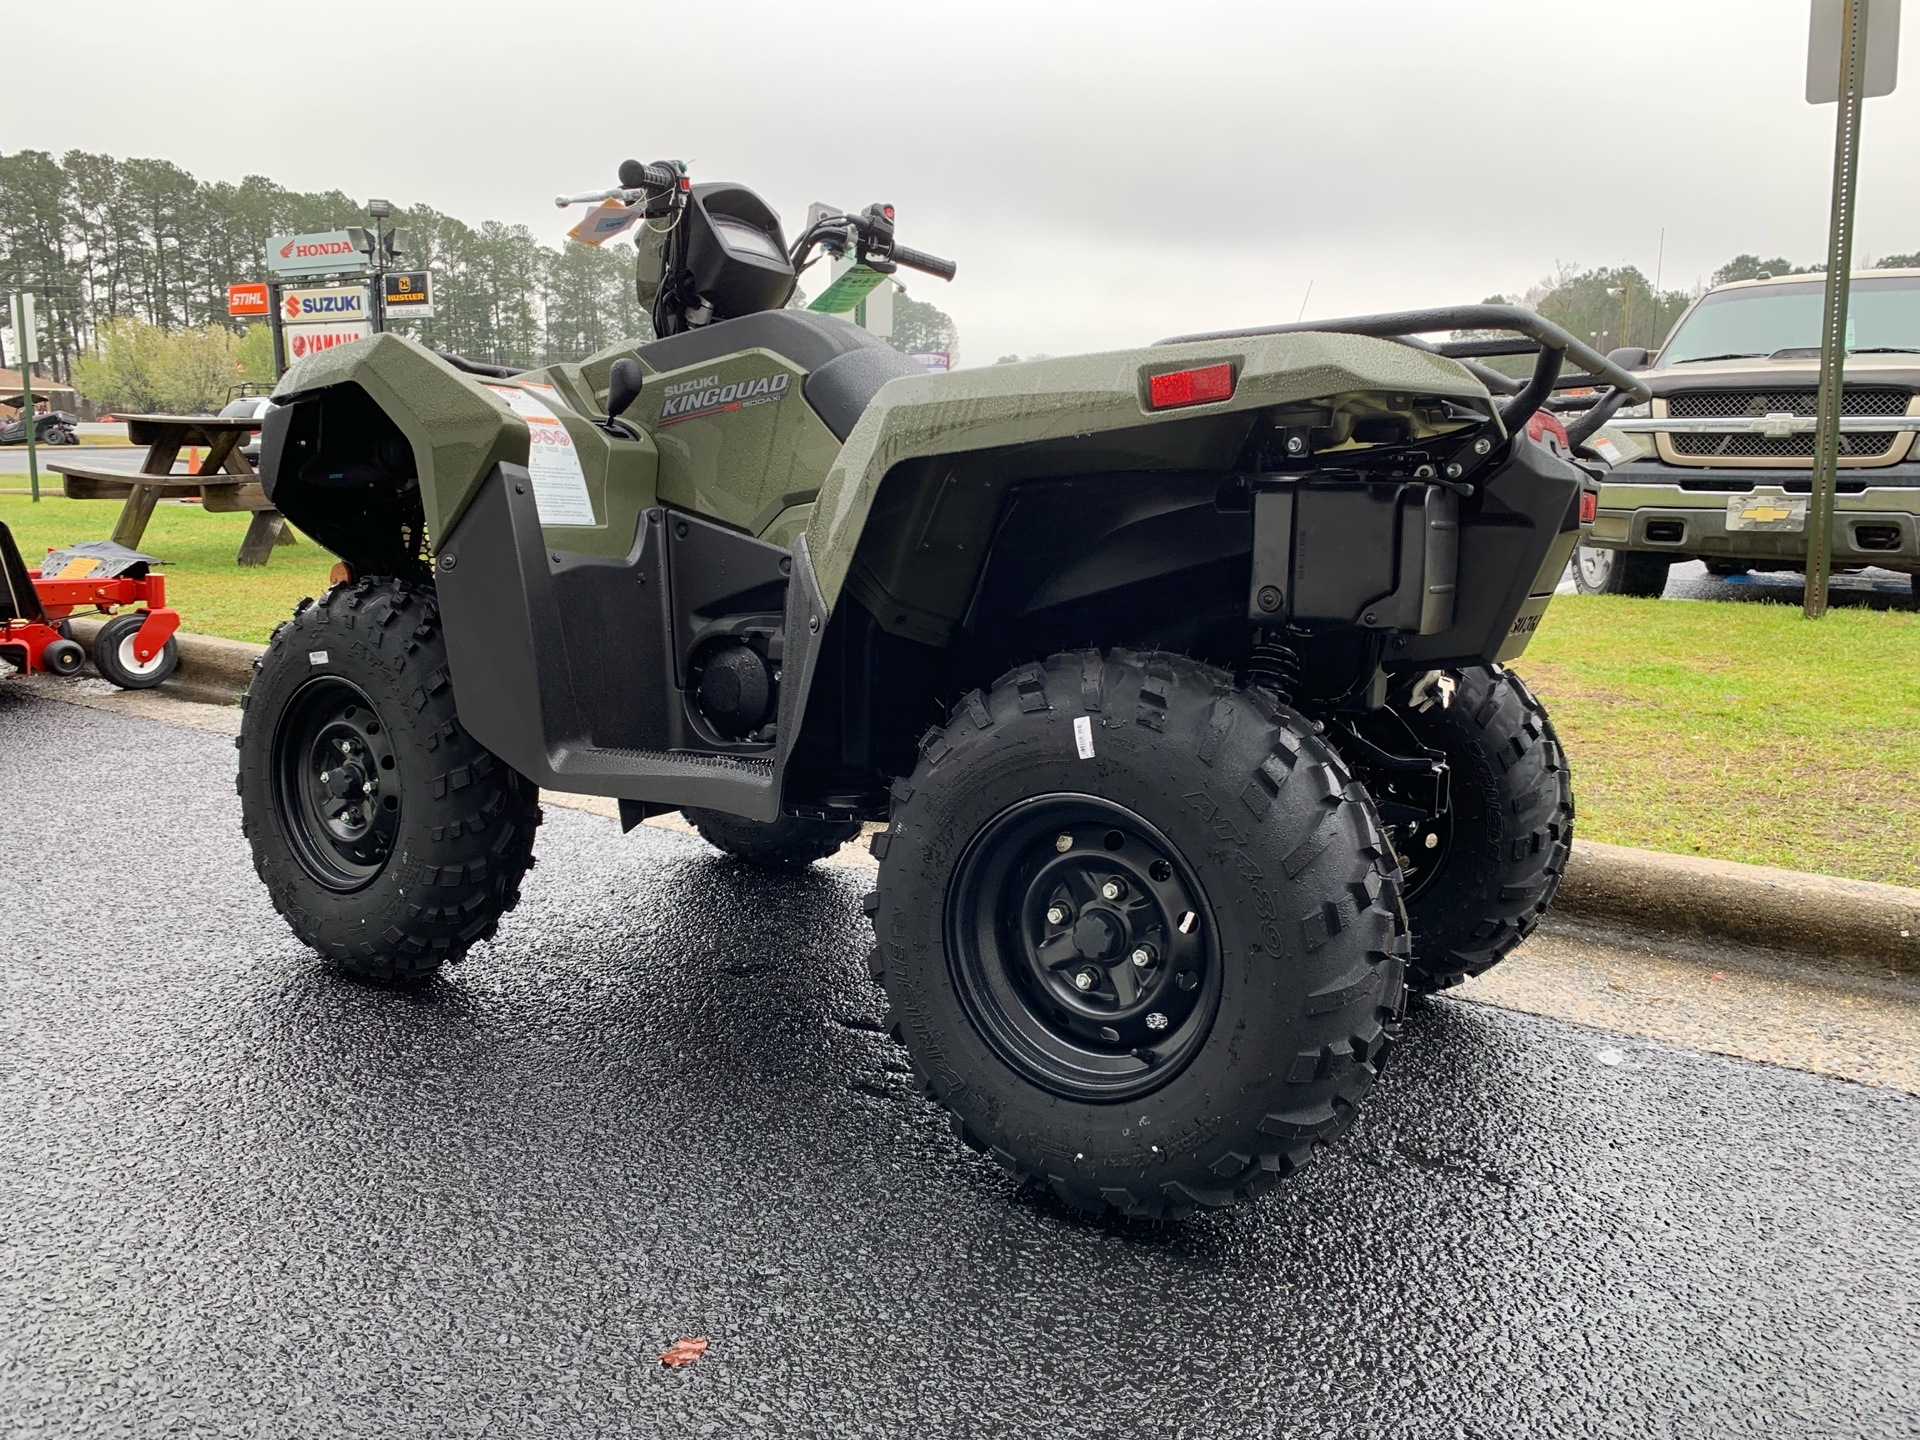 2019 Suzuki KingQuad 500AXi in Greenville, North Carolina - Photo 8